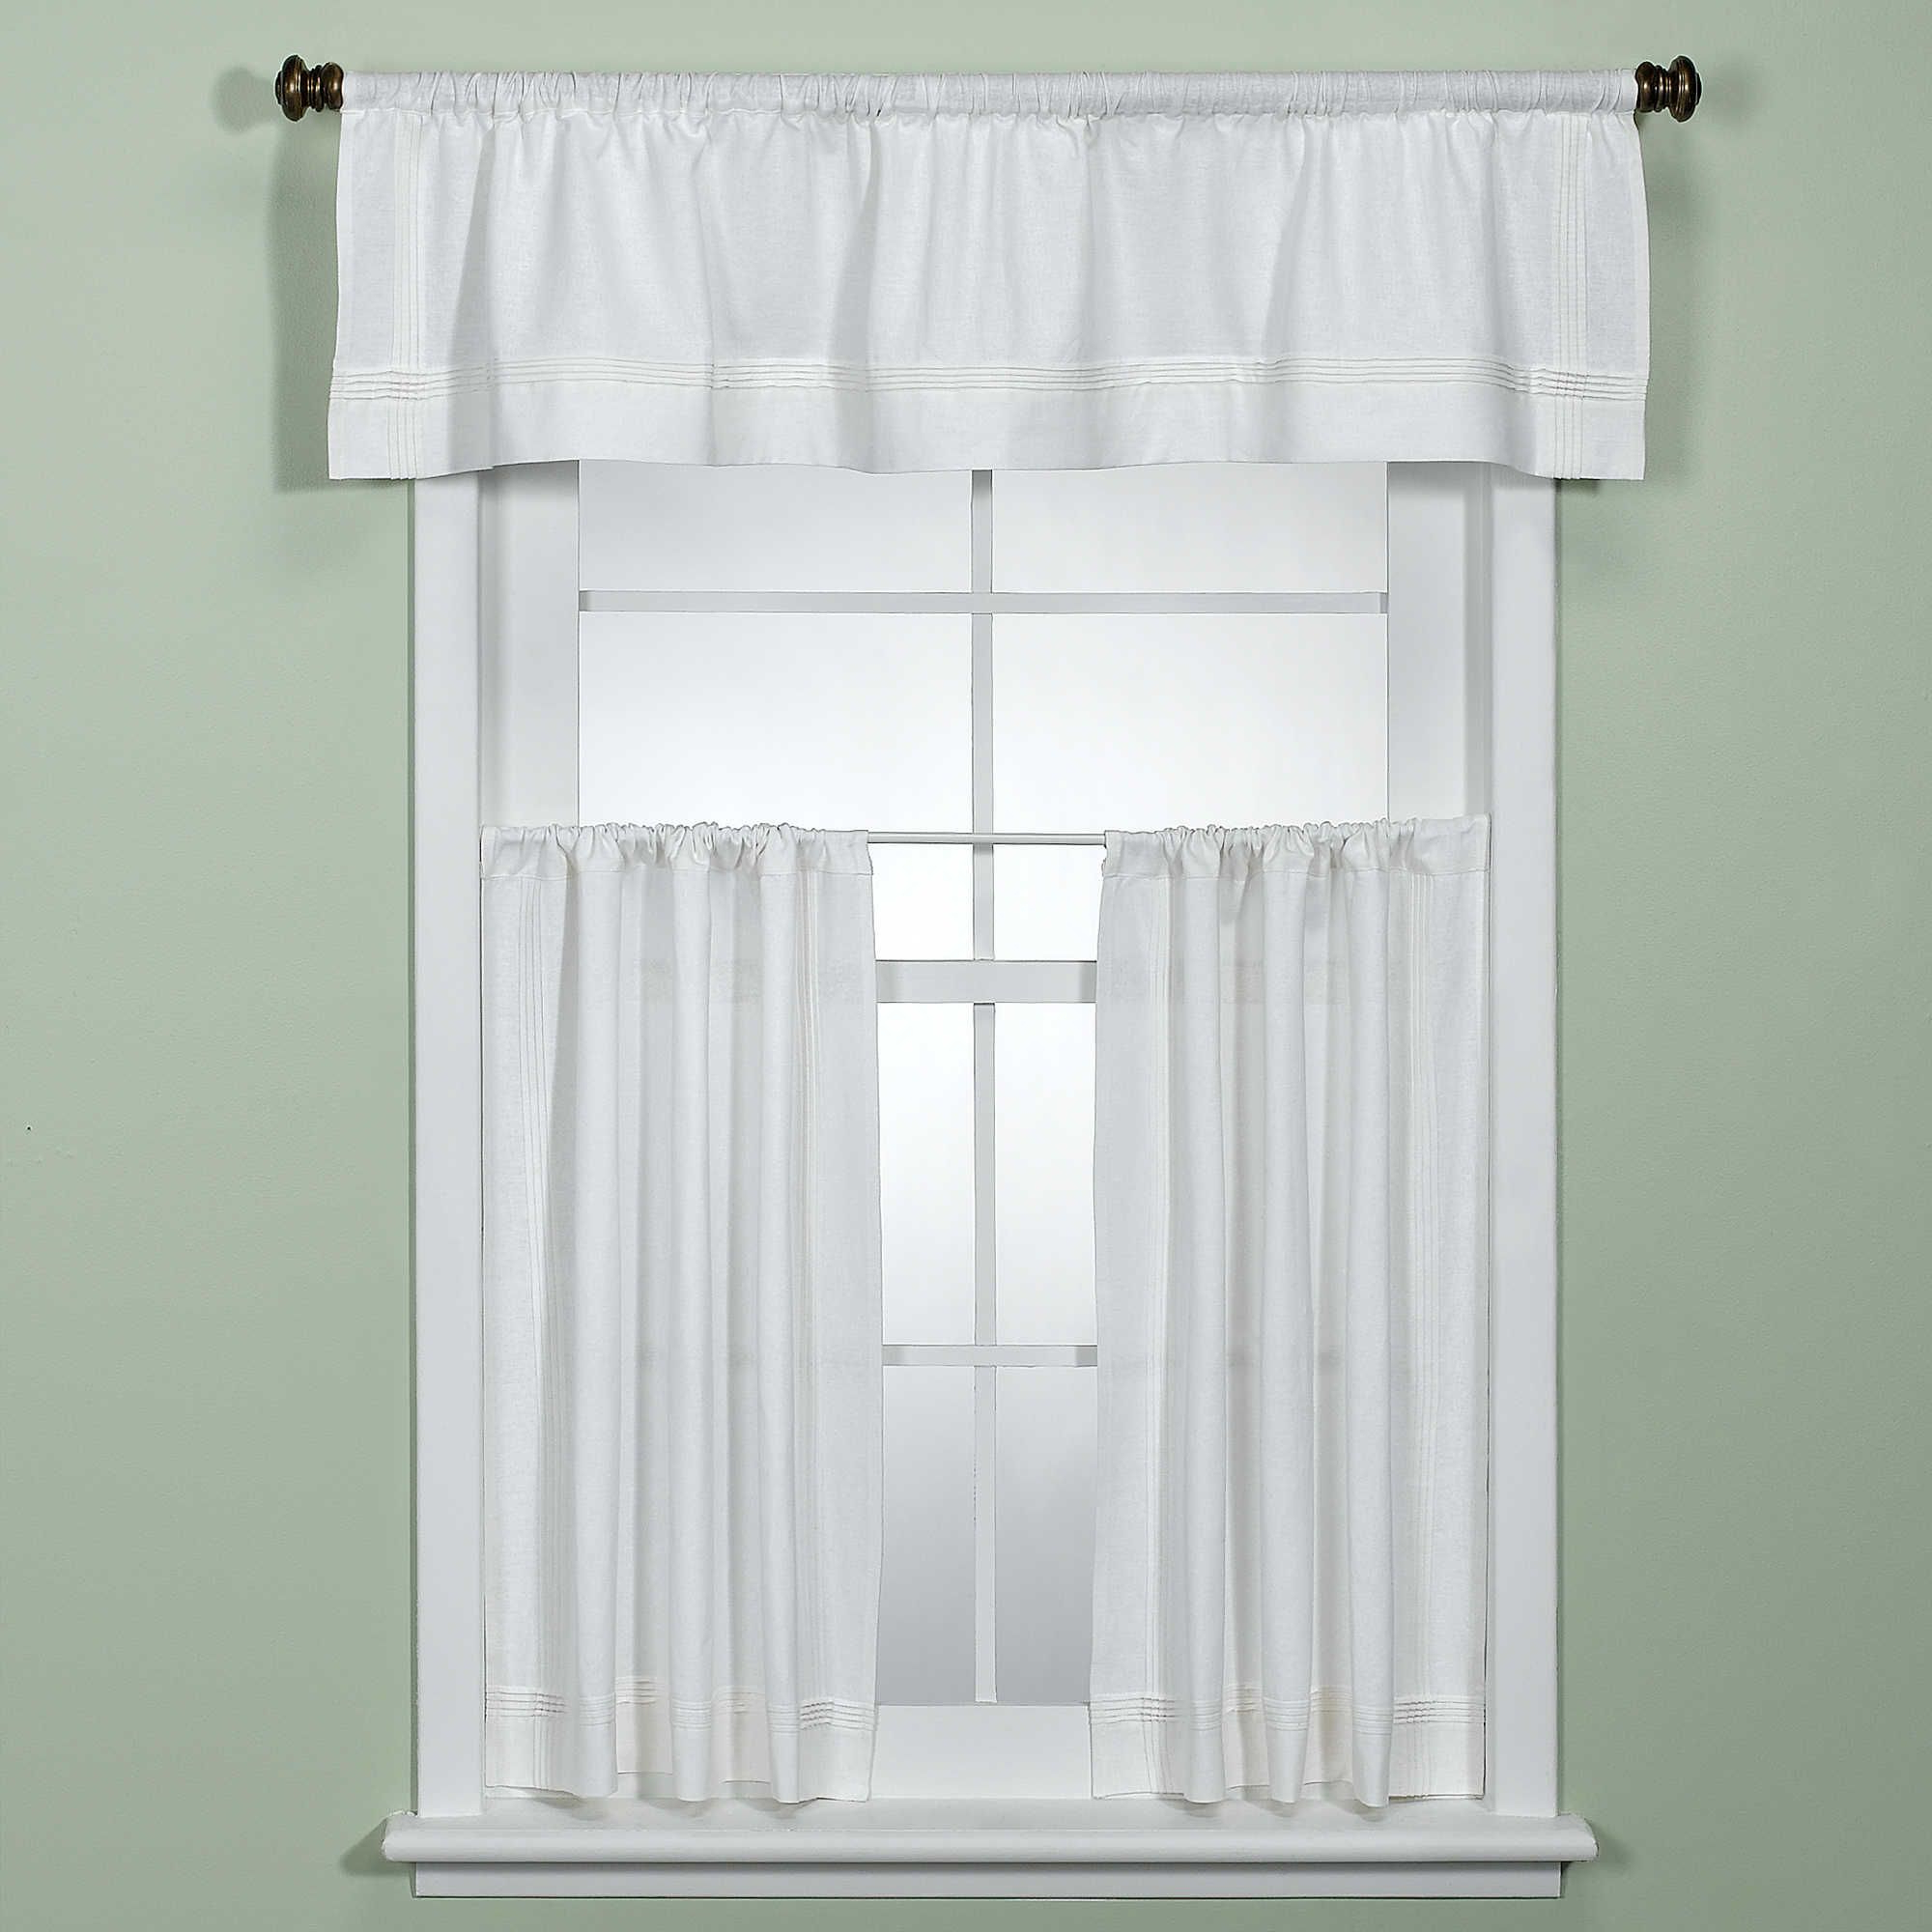 Modern Subtle Texture Solid White Kitchen Curtain Parts With Inside Famous Modern Subtle Texture Solid White Kitchen Curtain Parts With Grommets Tier And Valance Options (Gallery 8 of 20)